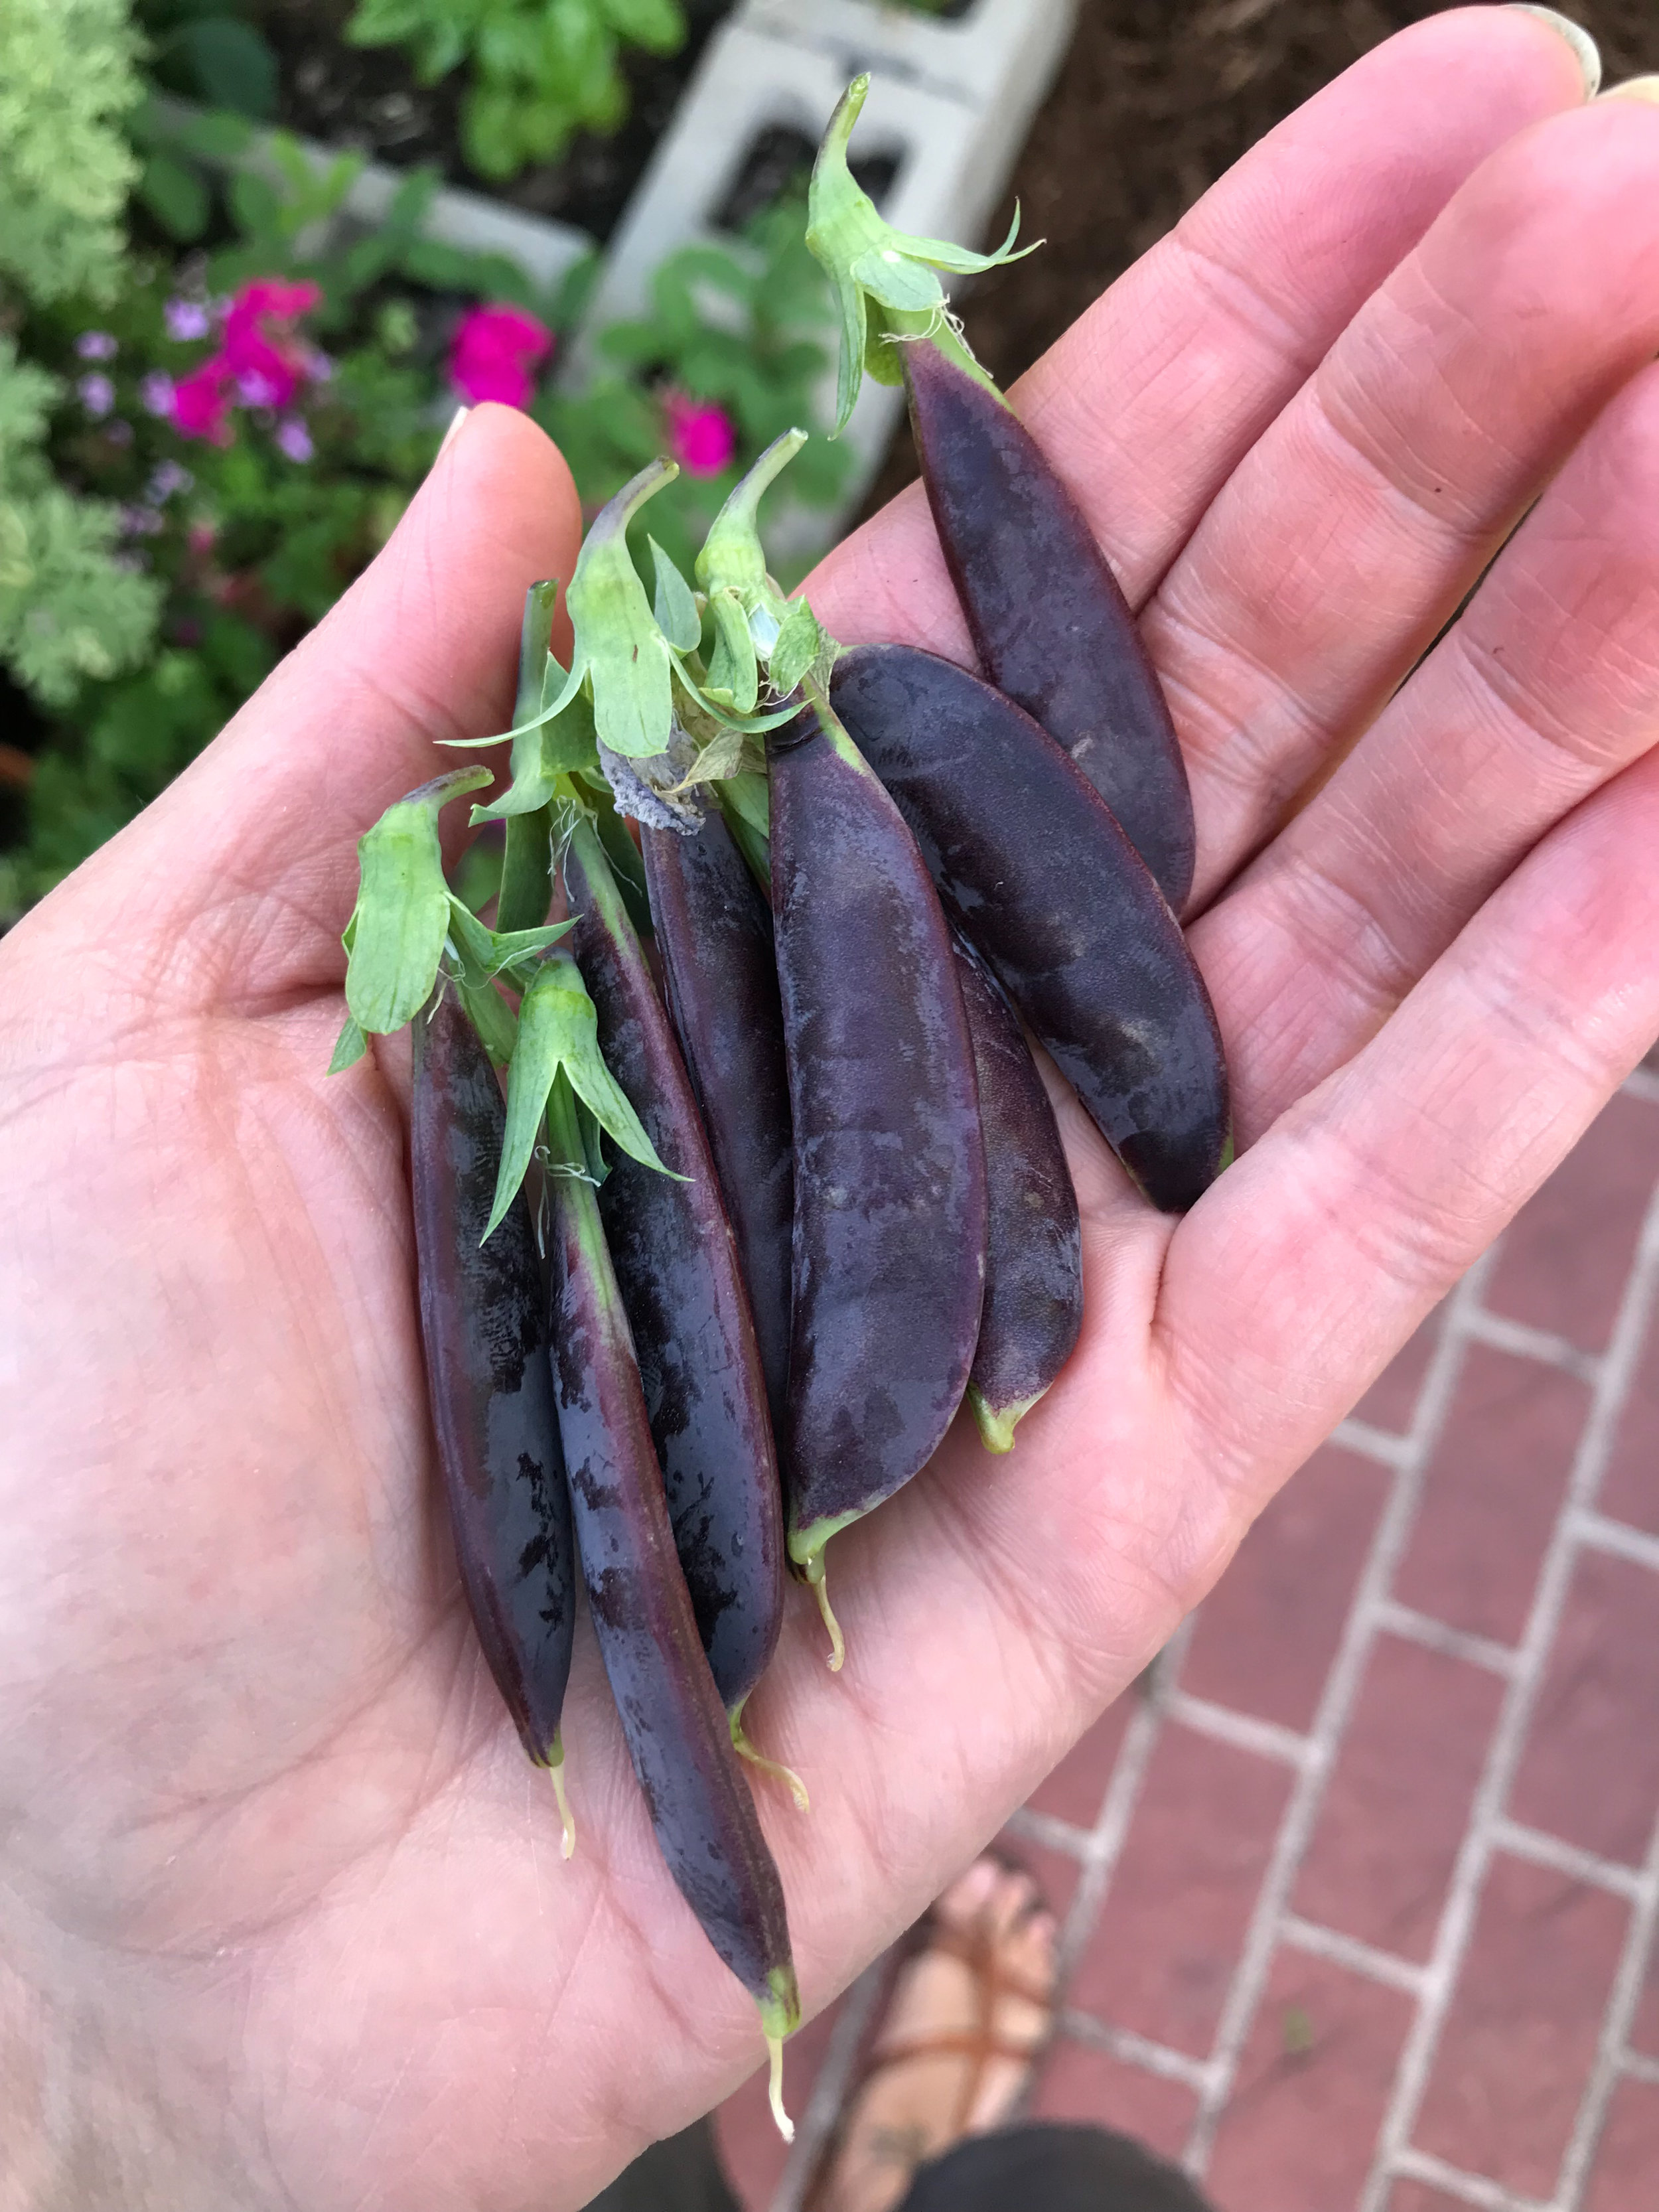 Purple Snap Peas Were Colorful and Fun in My Garden